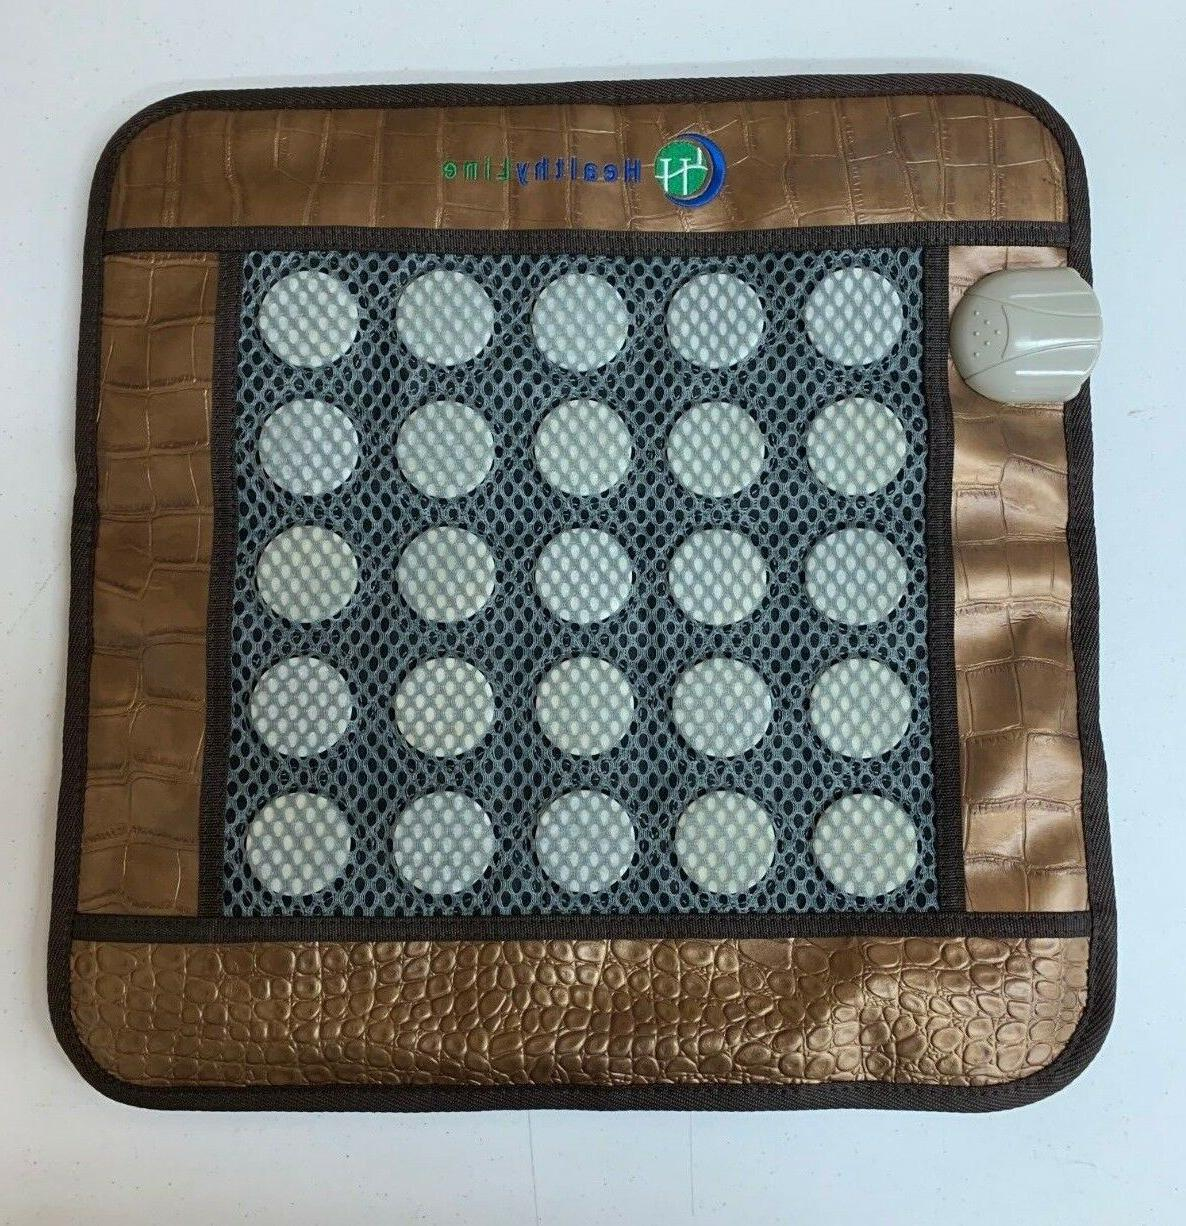 healthyline jade heated pad negative ions fir